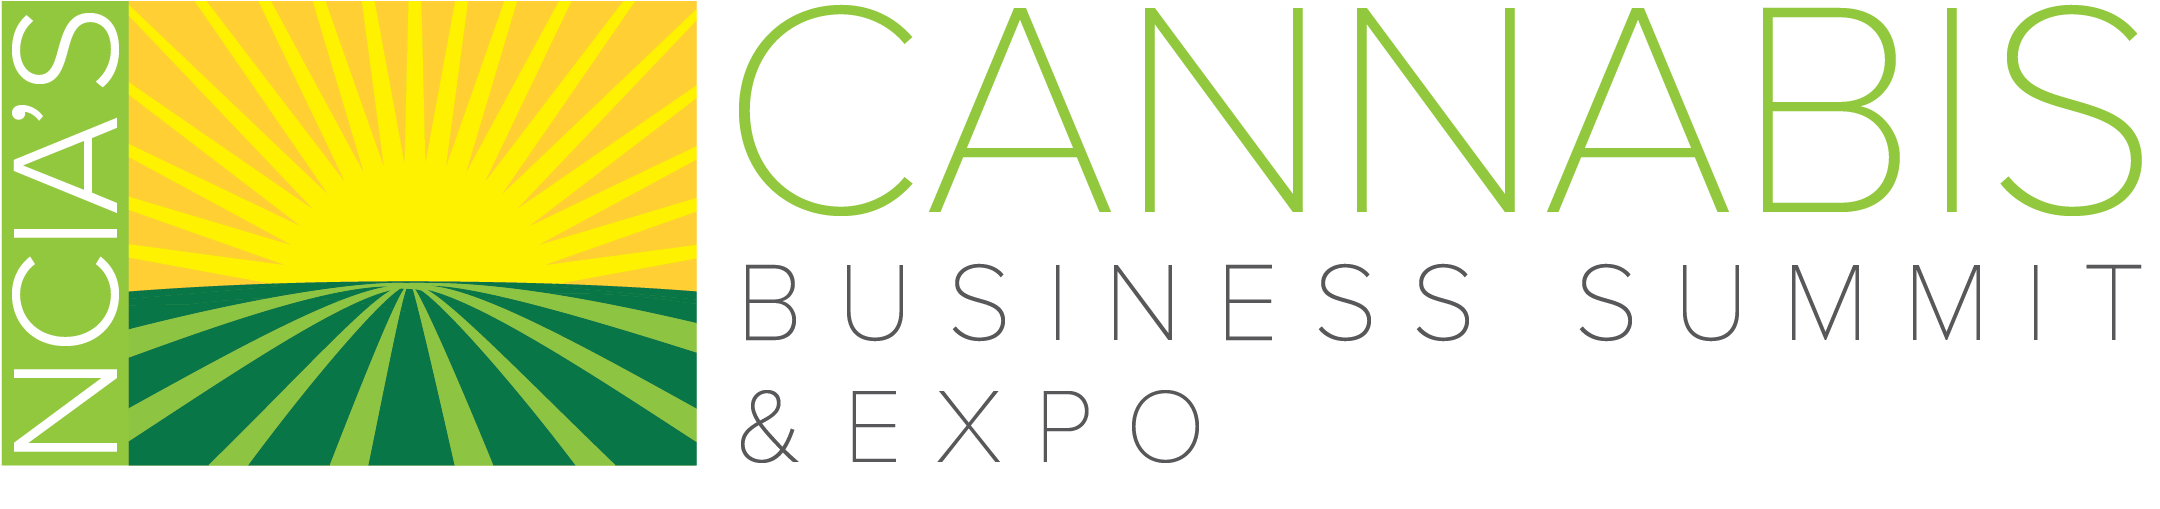 Cannabis Business Summit & Expo 2019